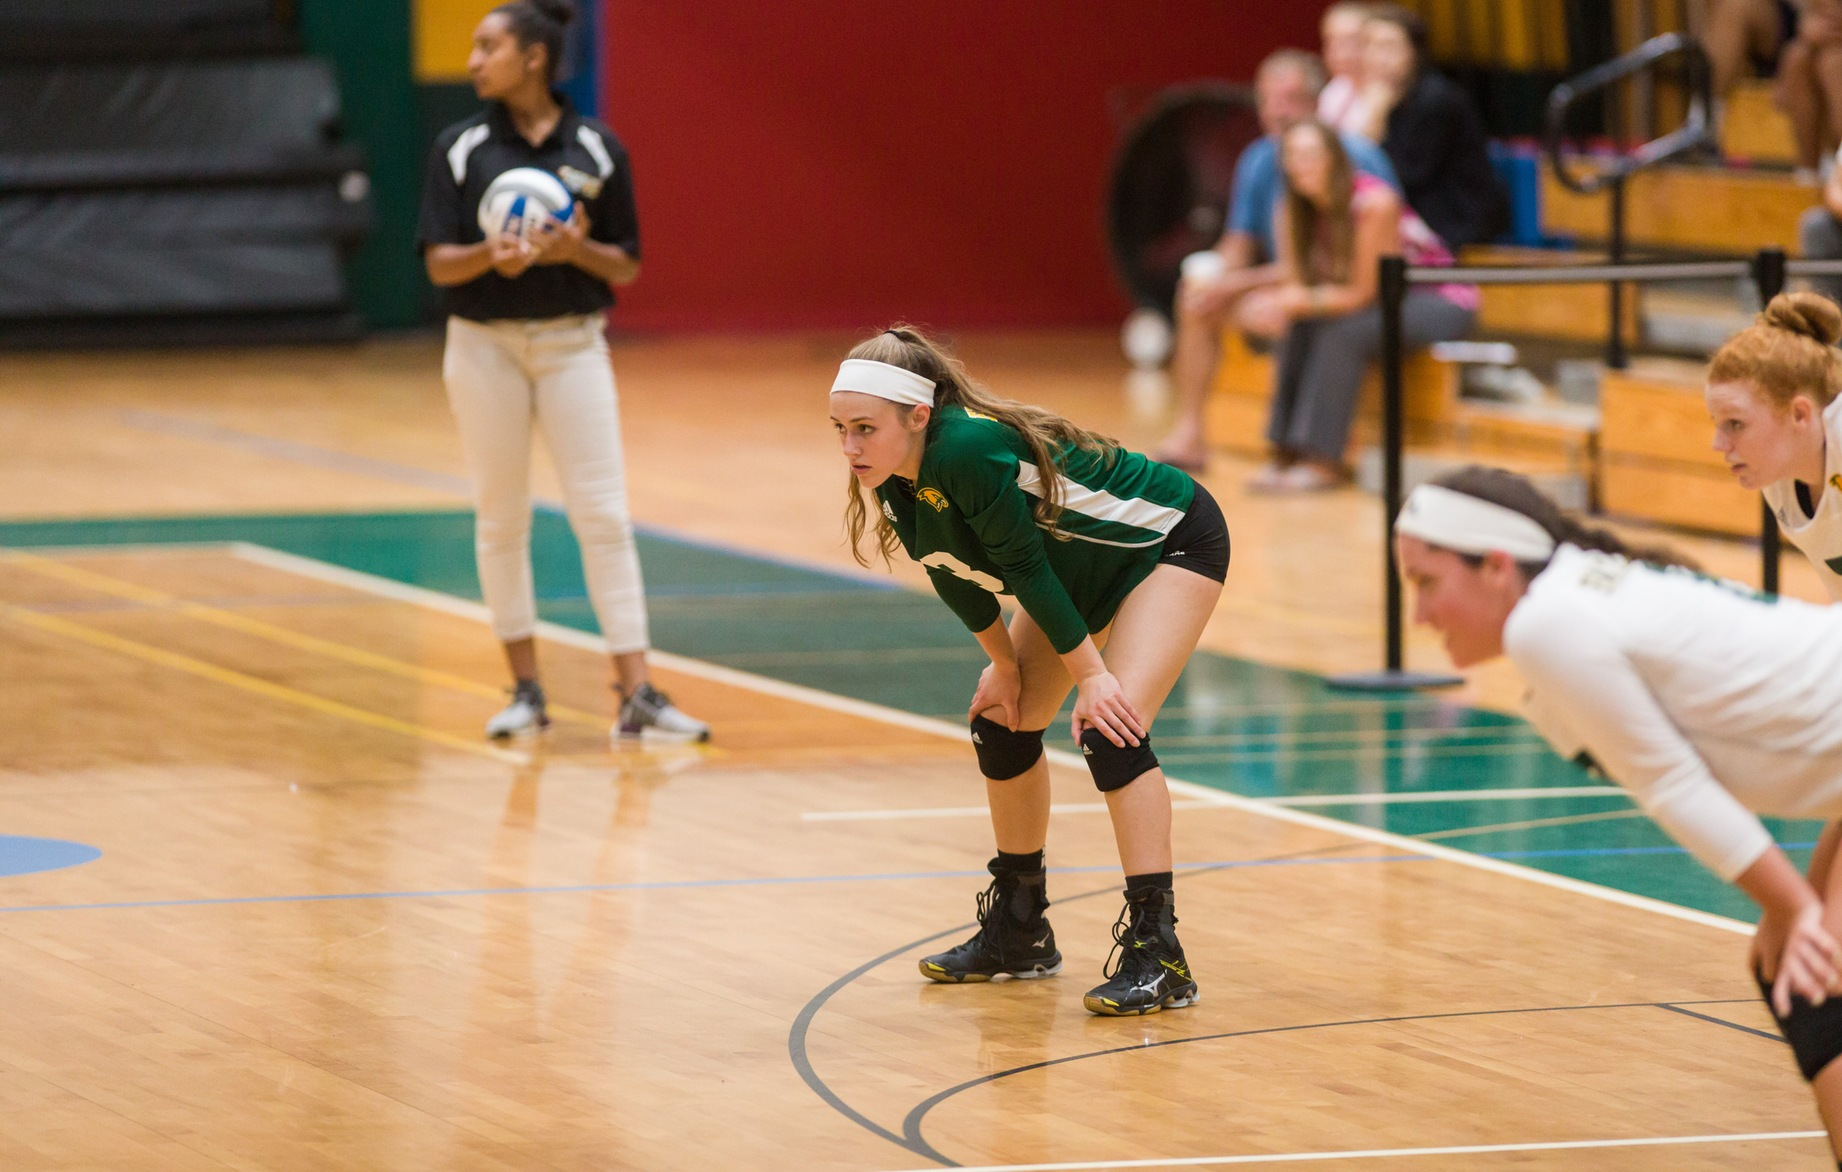 Falcons Splits Tri-Match With New England College & Northern Vermont-Lyndon